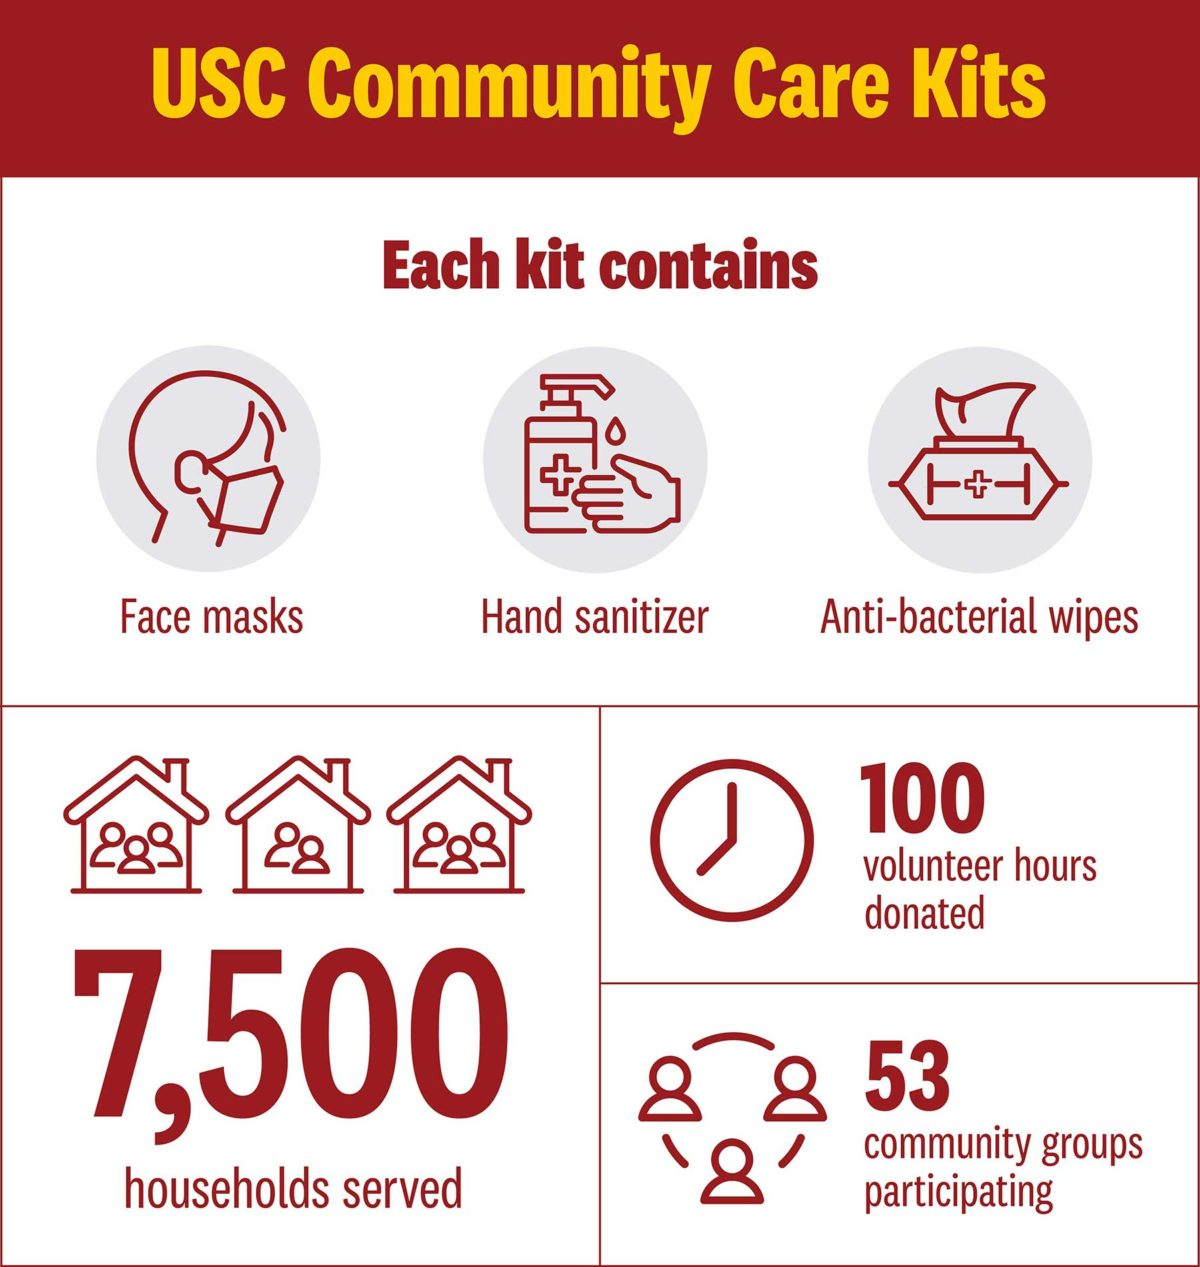 USC Community Care Kits graphic